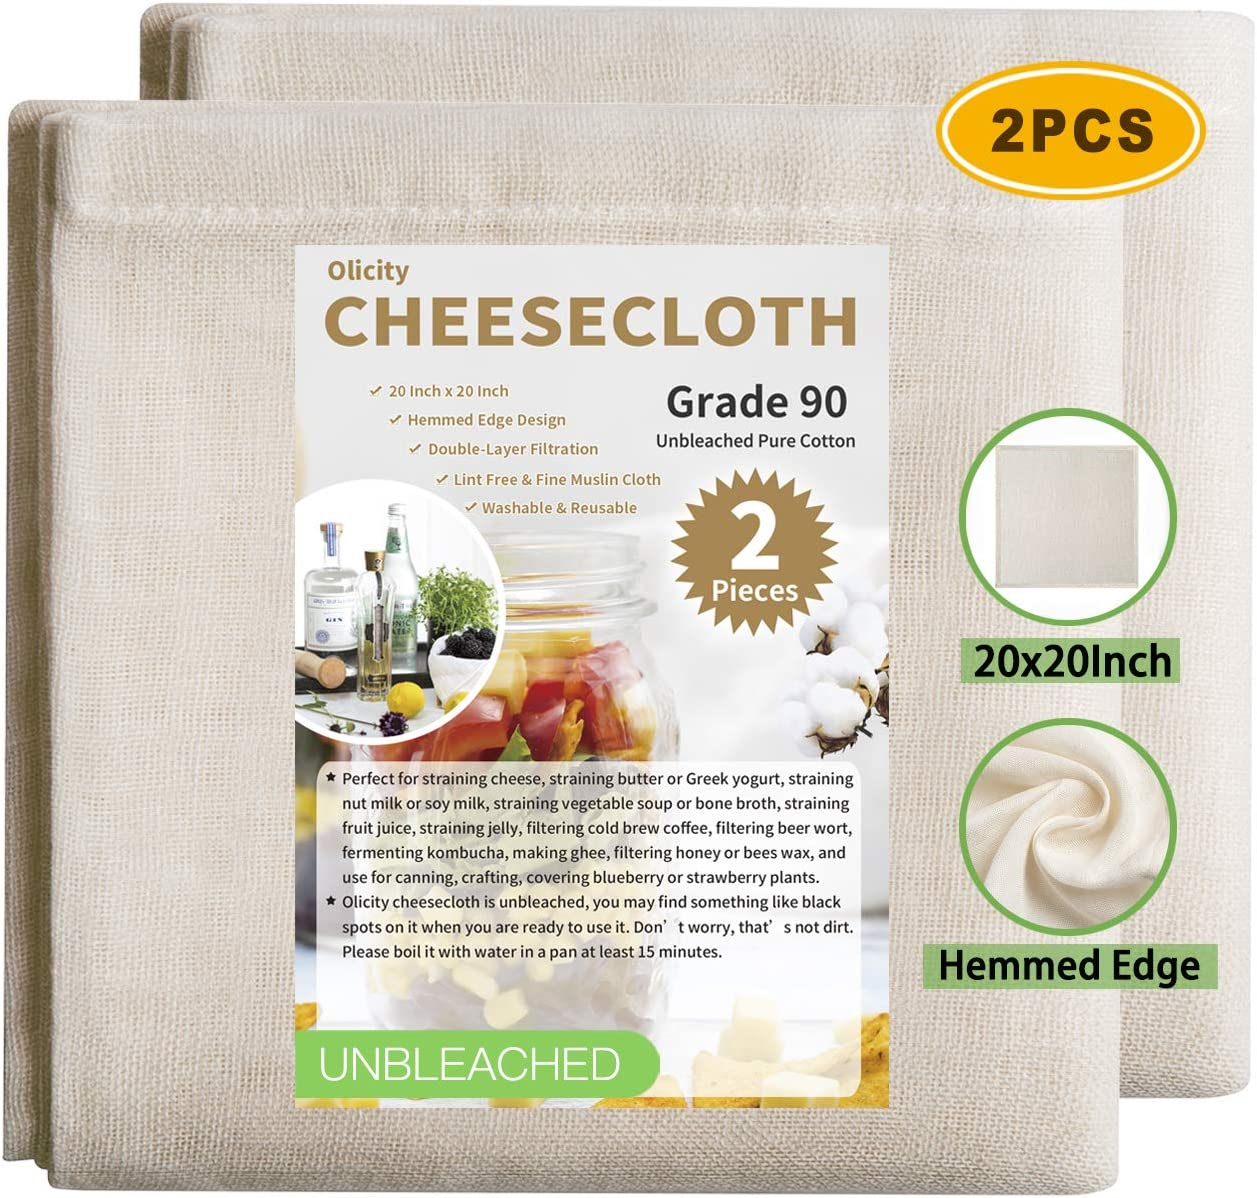 Olicity Cheesecloth, 20x20 Inch, Grade 90, 100% Unbleached Pure Cotton Muslin Cloth for Straining, Ultra Fine Reusable Hemmed Edge Cheese Cloth Filter Strainer for Cooking, Nut Milk Strain - 2 Pieces